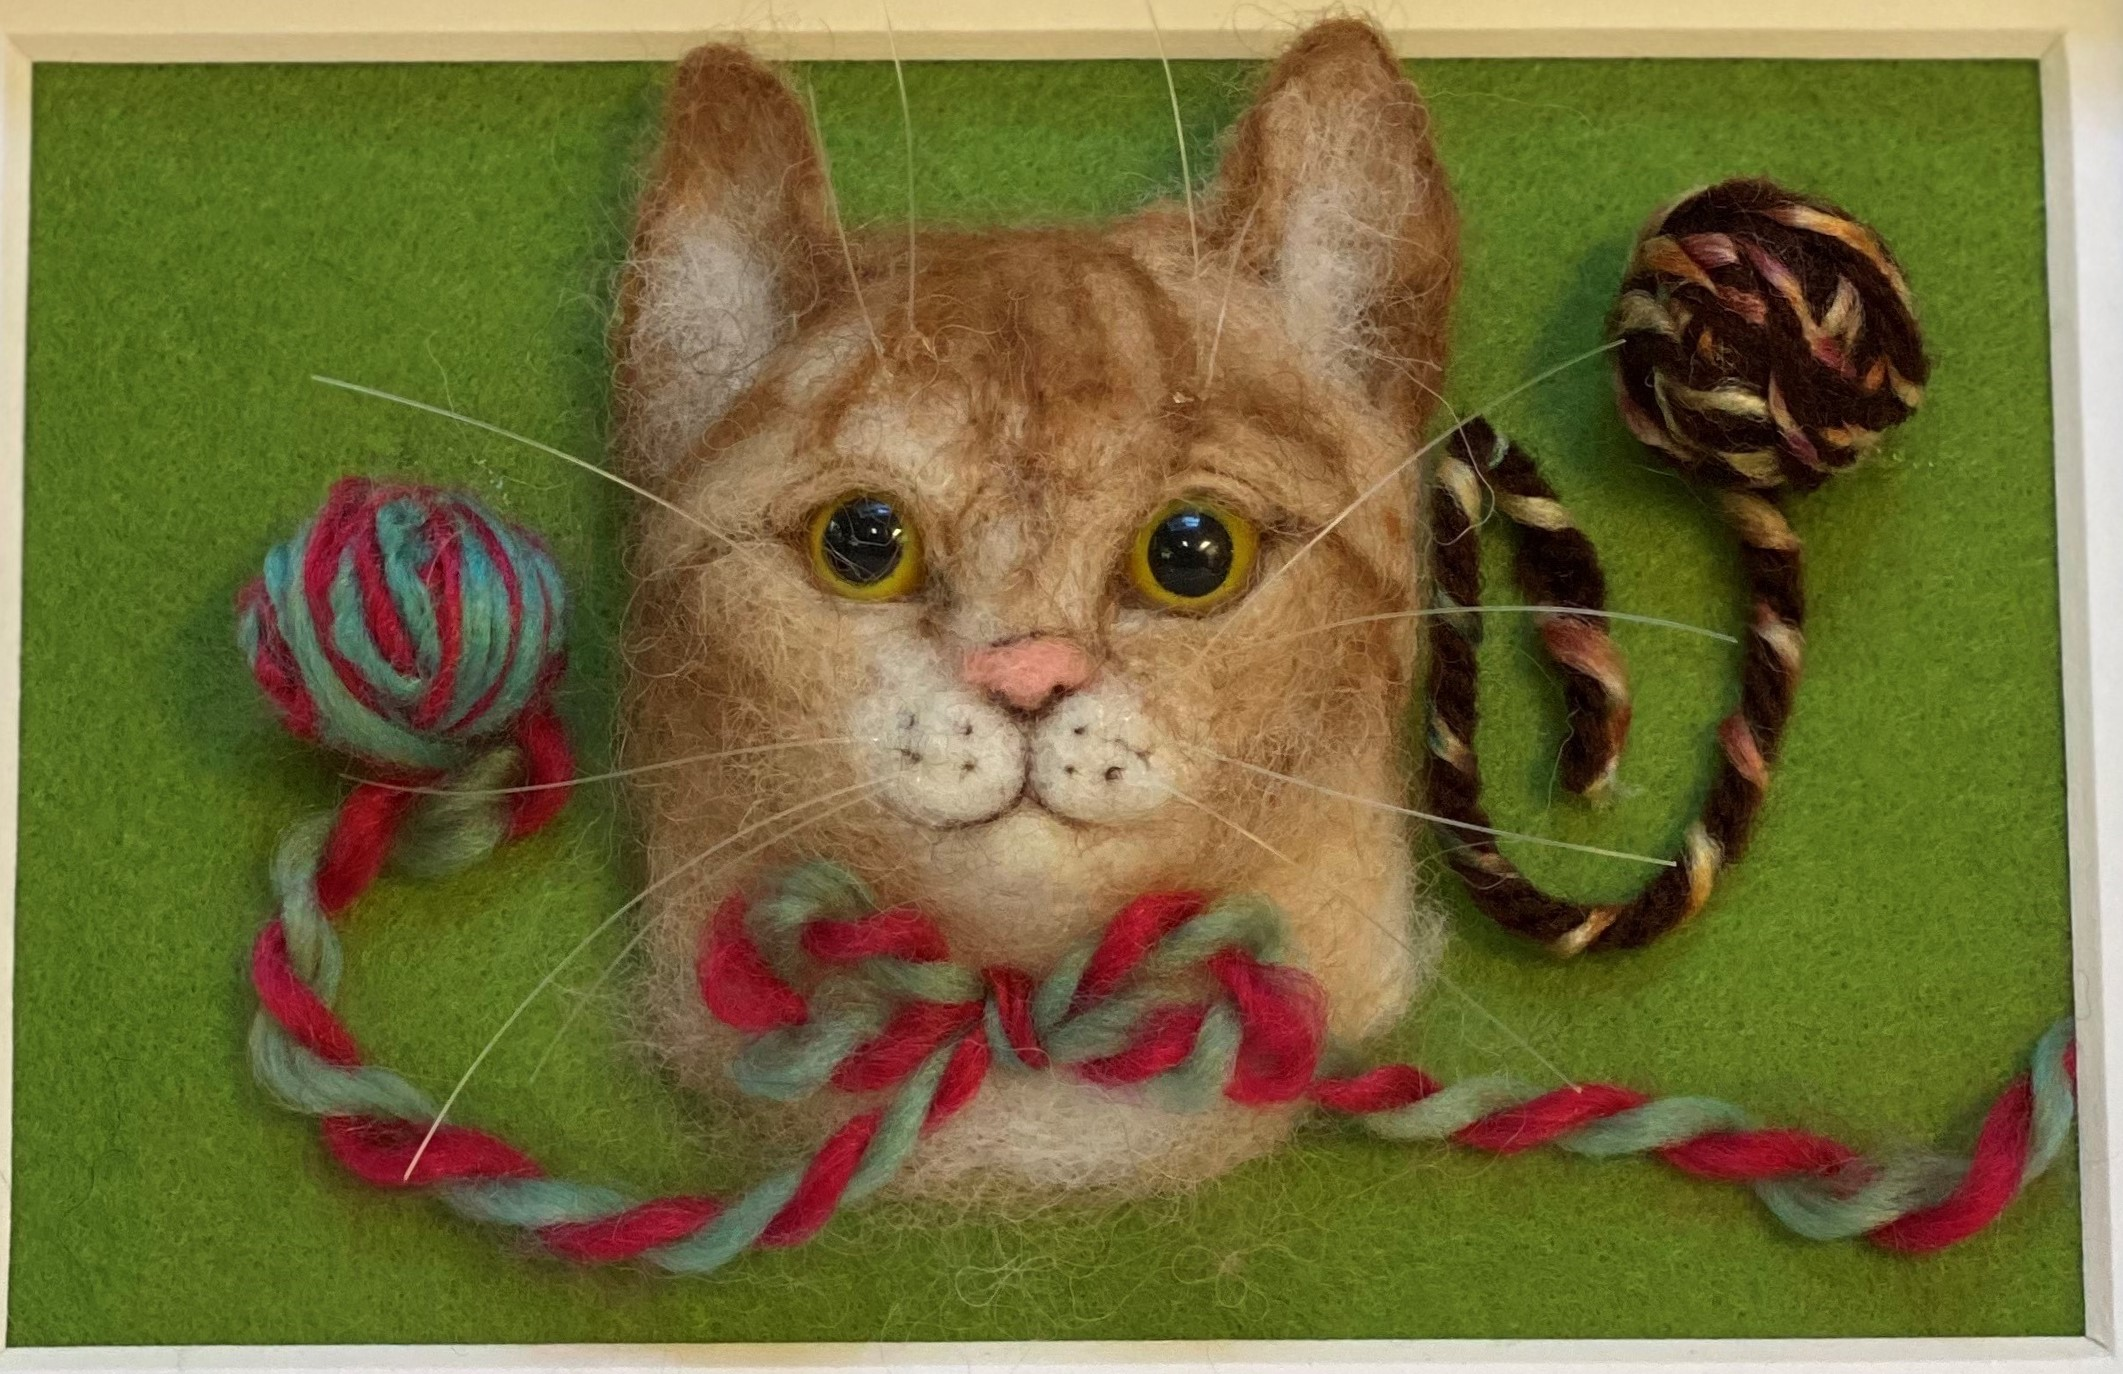 A 3D orange, brown, and white tabby cat head created through needle felting sits on a green background with two balls of yarn.